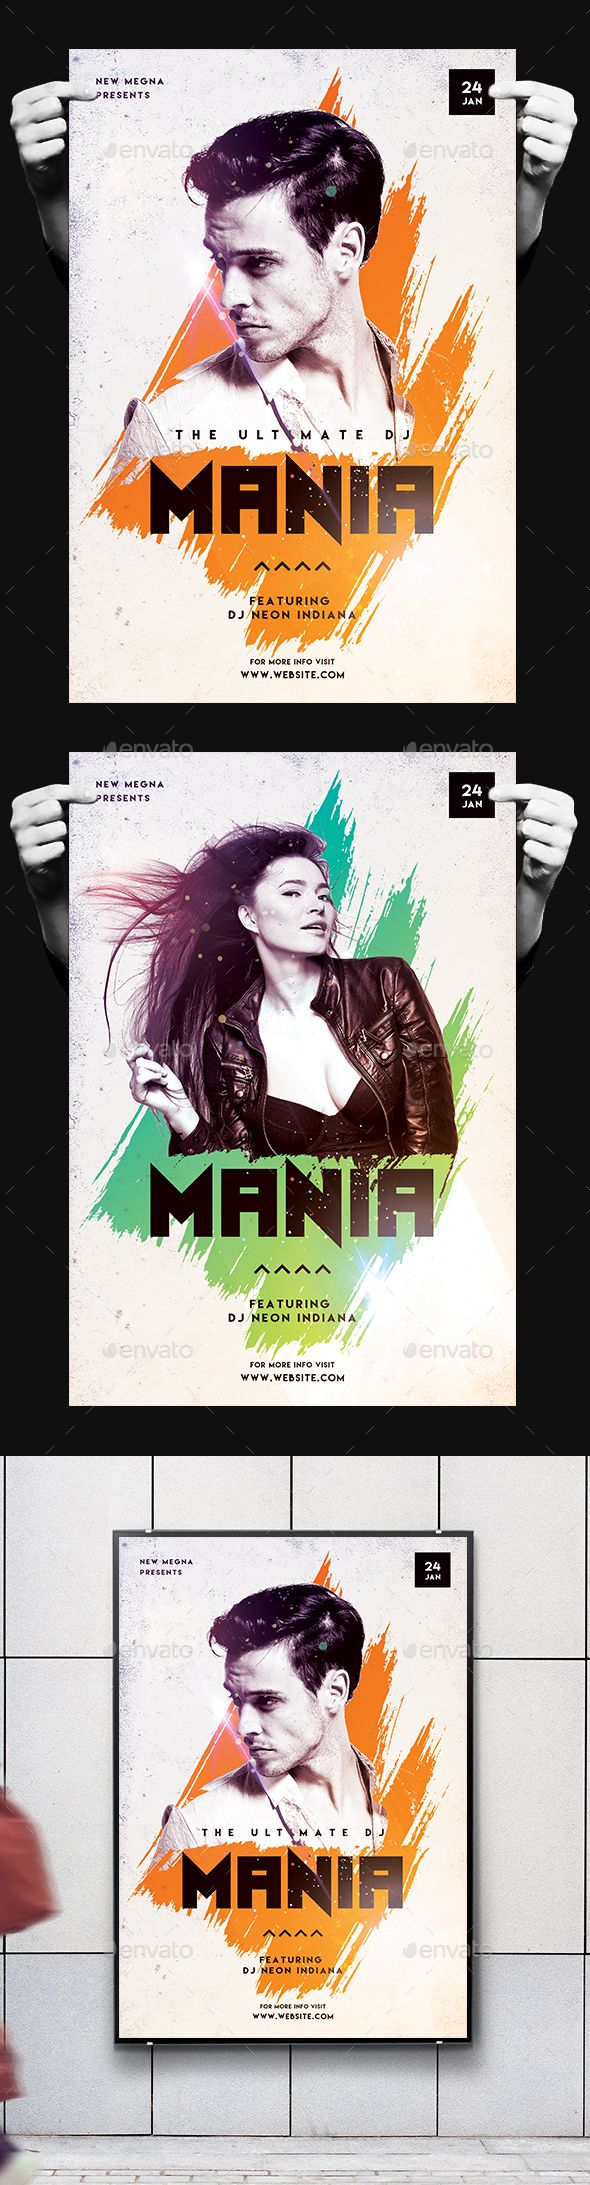 DJ Mania Poster/Flyer — Photoshop PSD #dj #concert • Available here → https://graphicriver.net/item/dj-mania-posterflyer/19407664?ref=pxcr